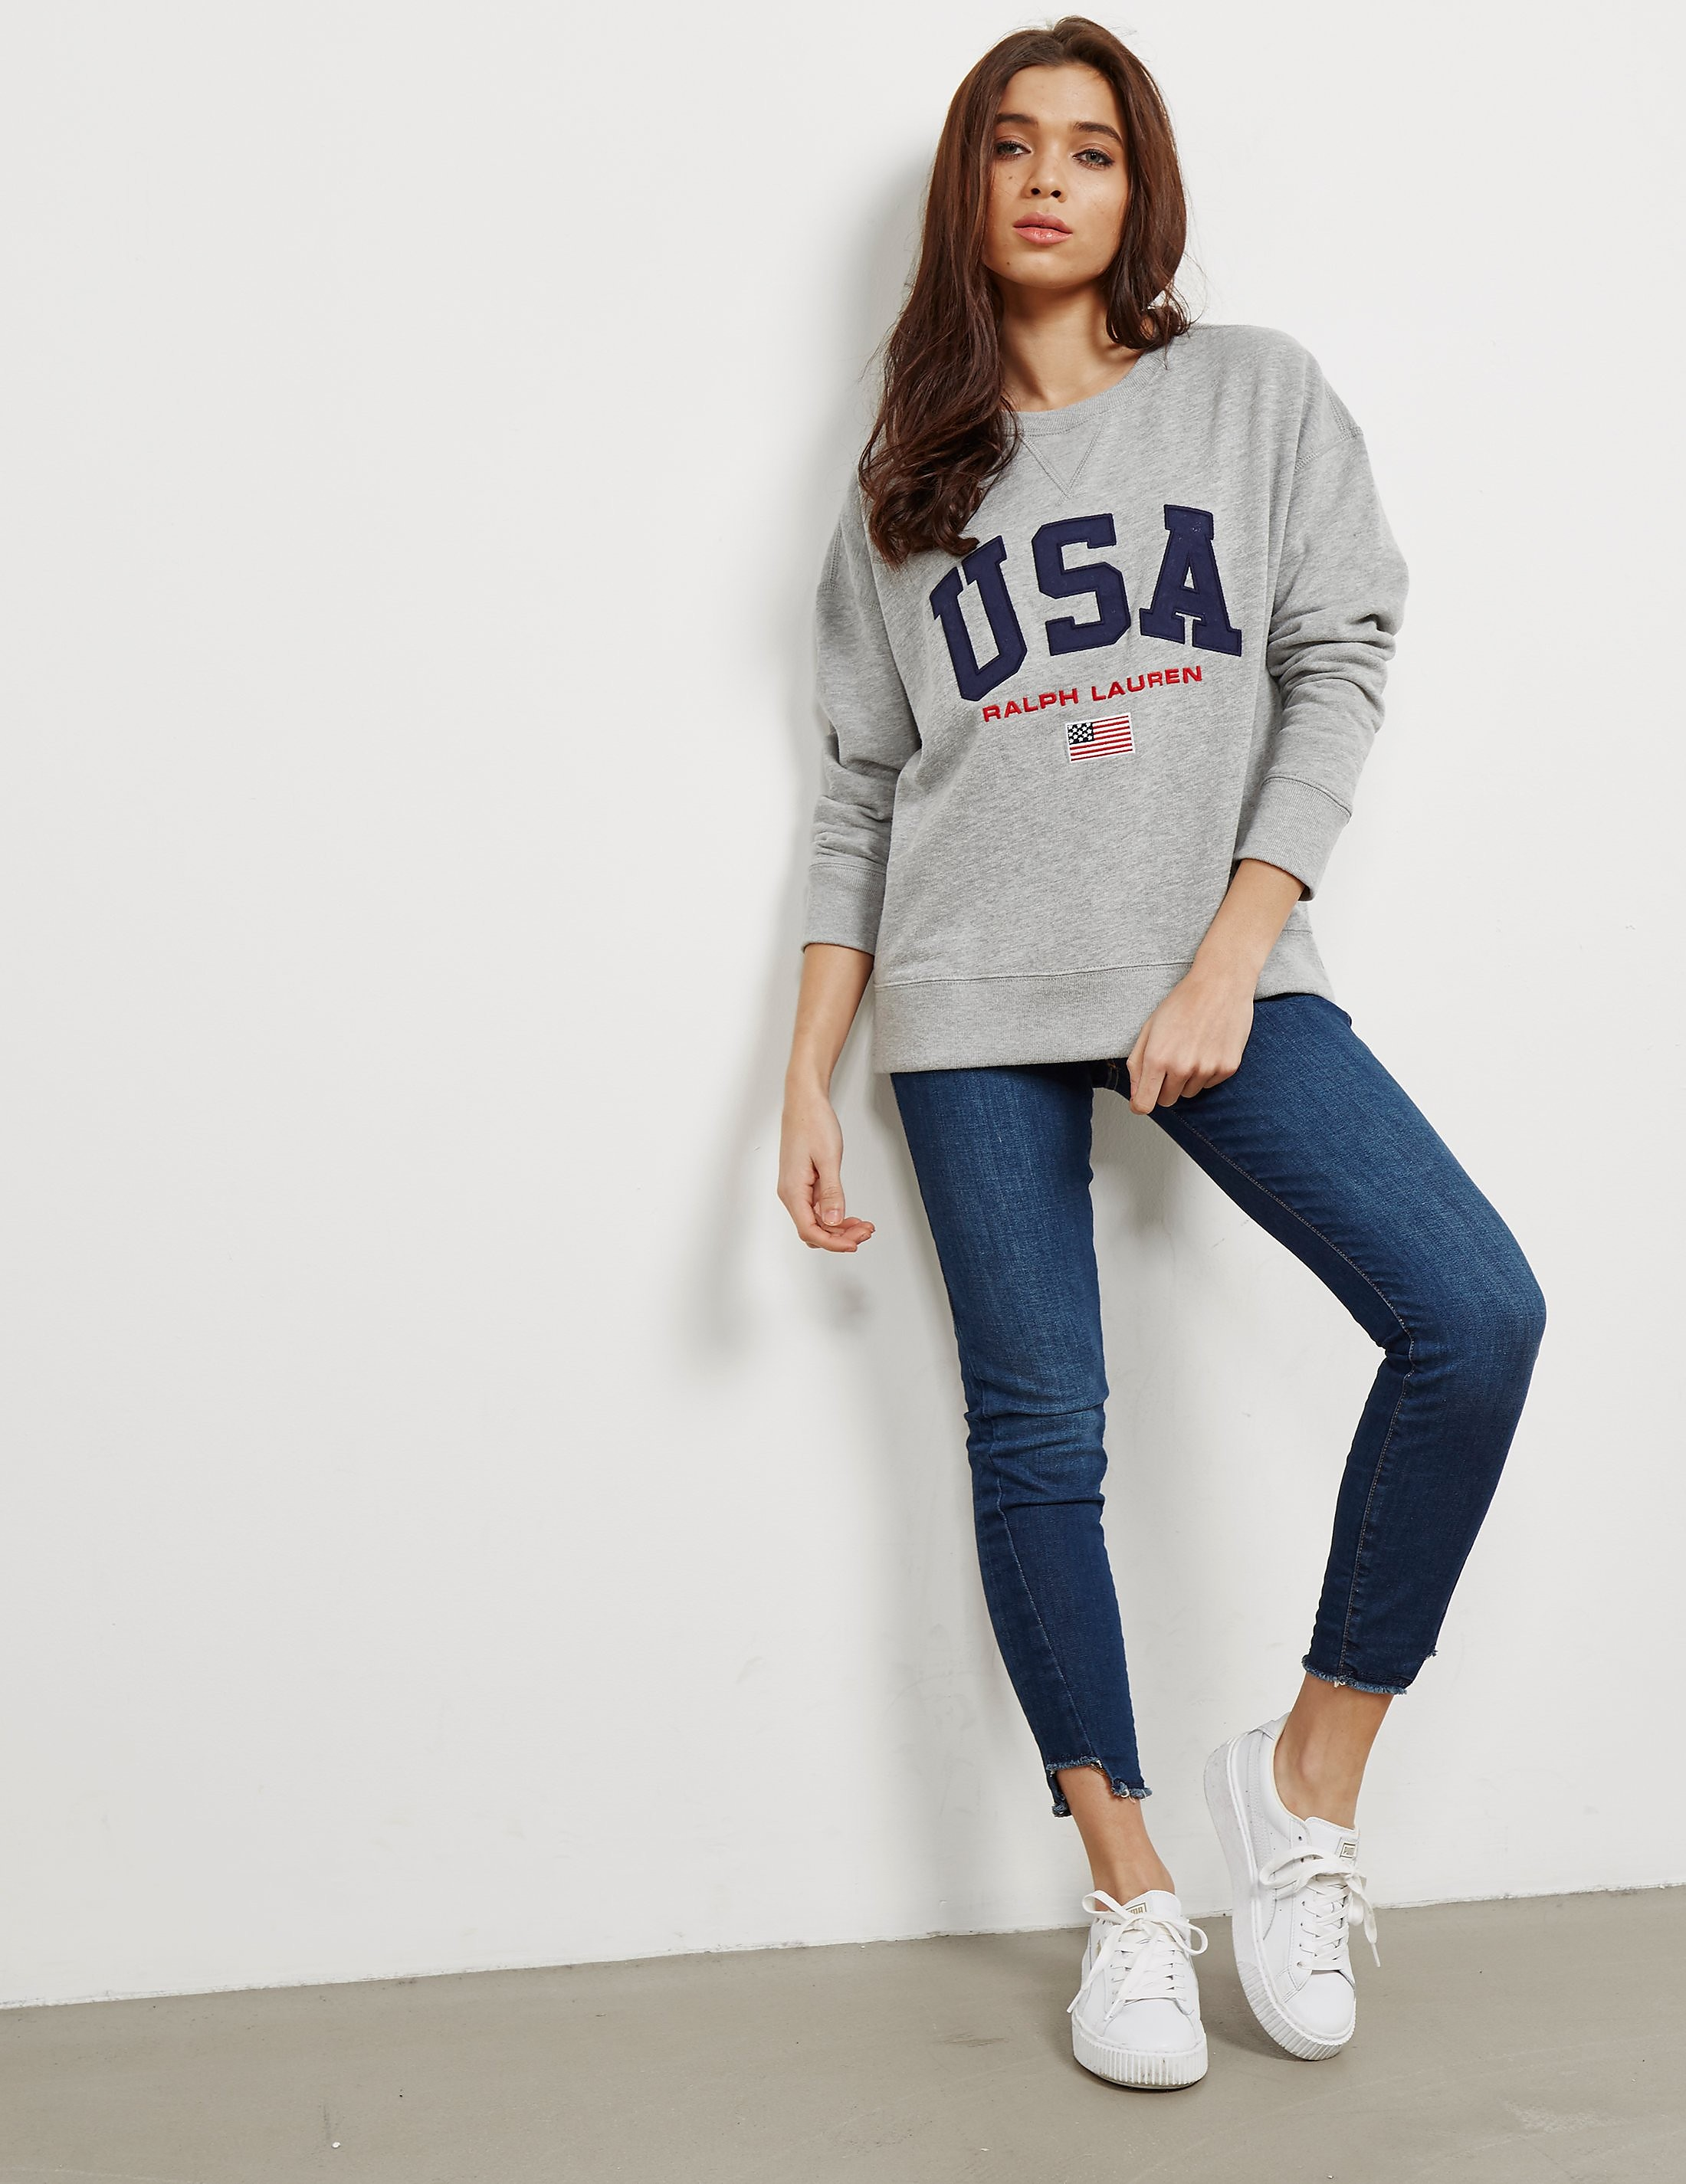 Polo Ralph Lauren USA Crew Sweatshirt